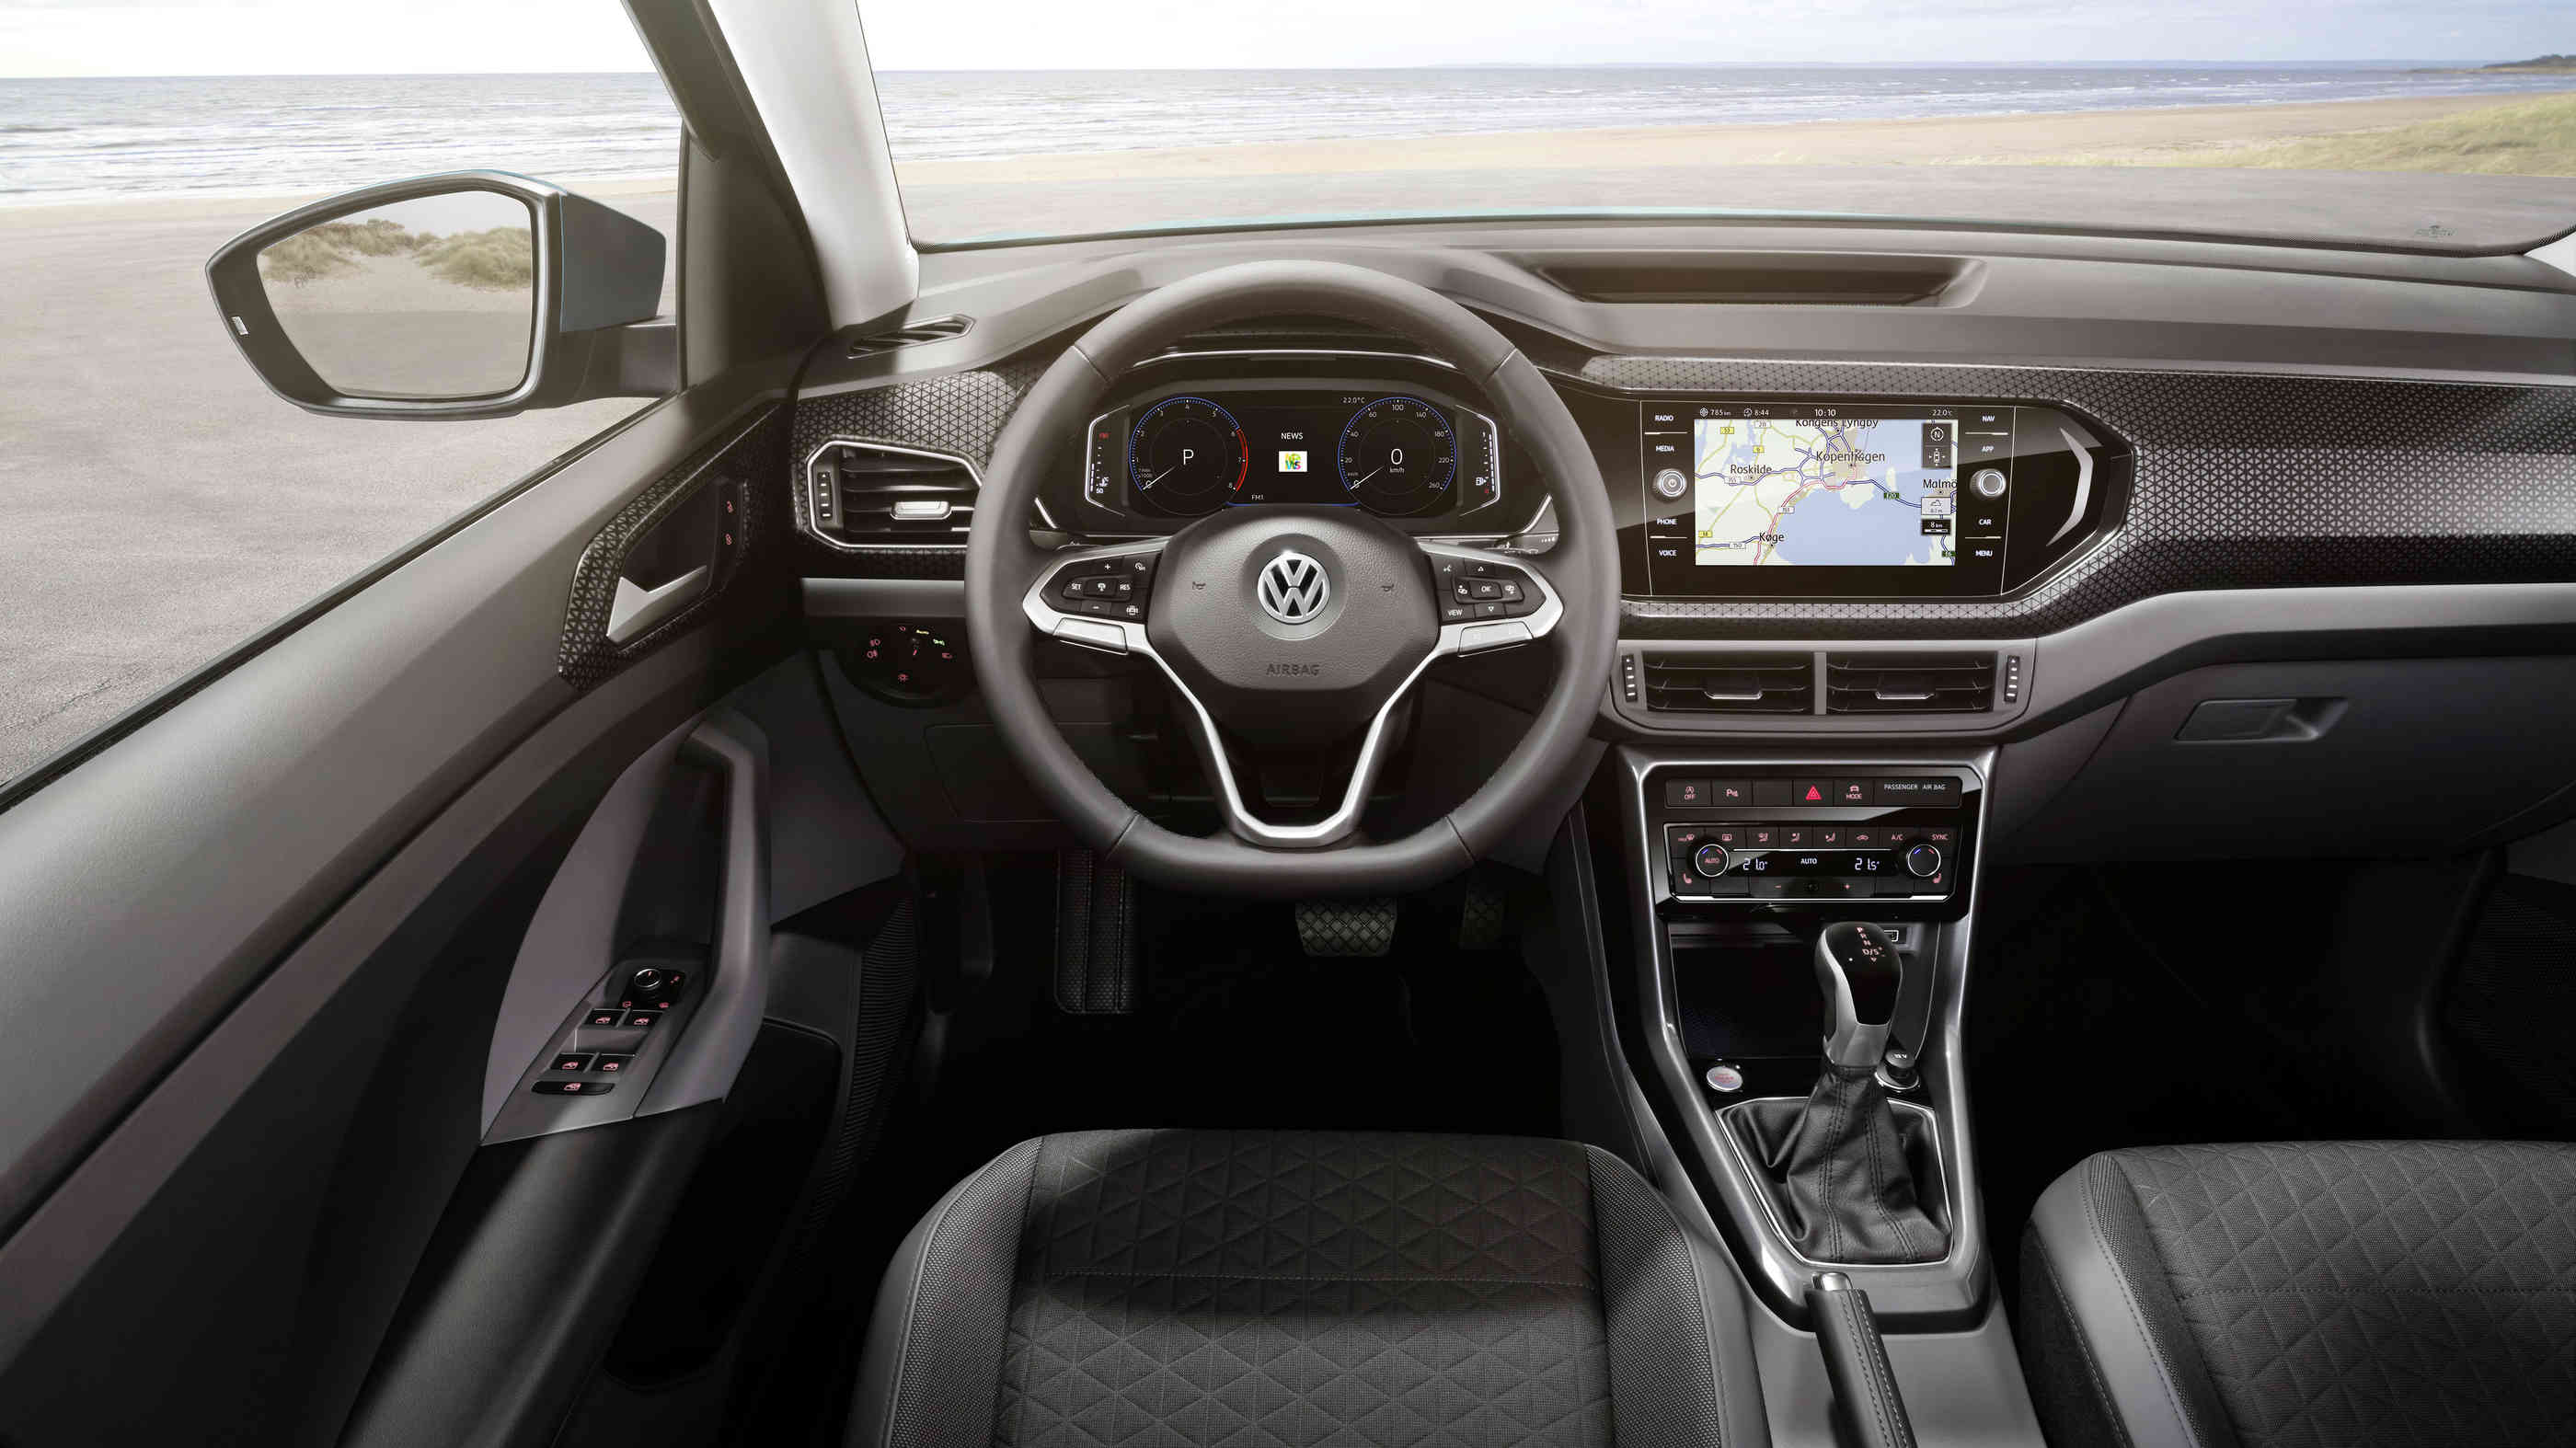 71 The Best 2019 Volkswagen Cross Exterior And Interior